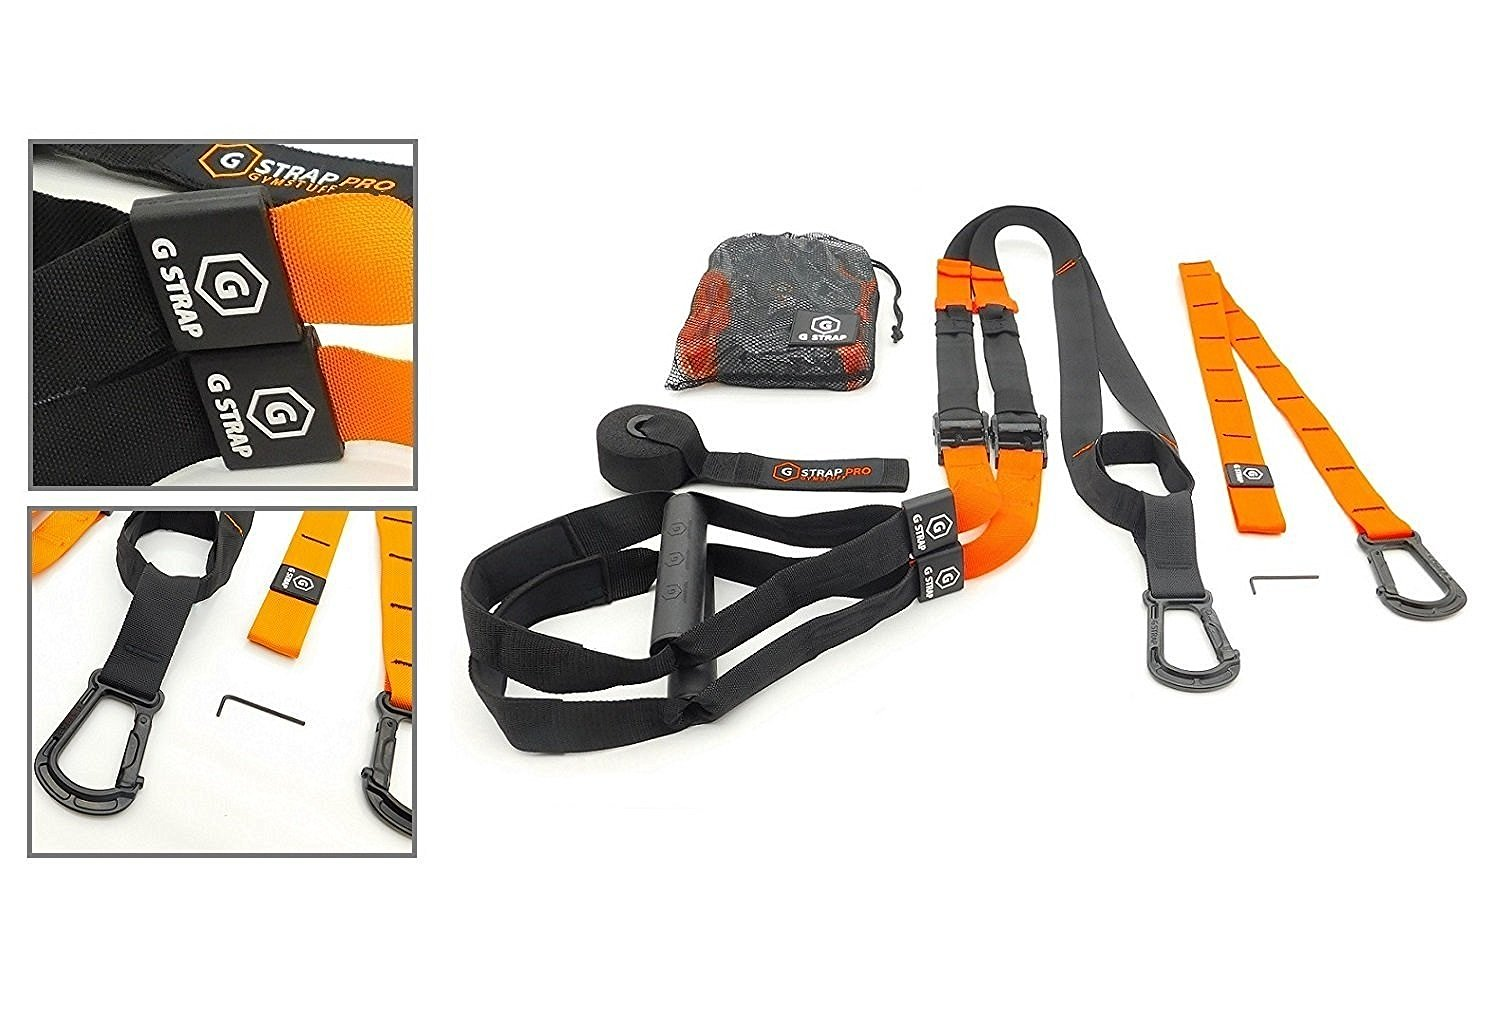 GYMSTUFF G-STRAP (6 COLORS) Suspension Body Fitness Trainer.